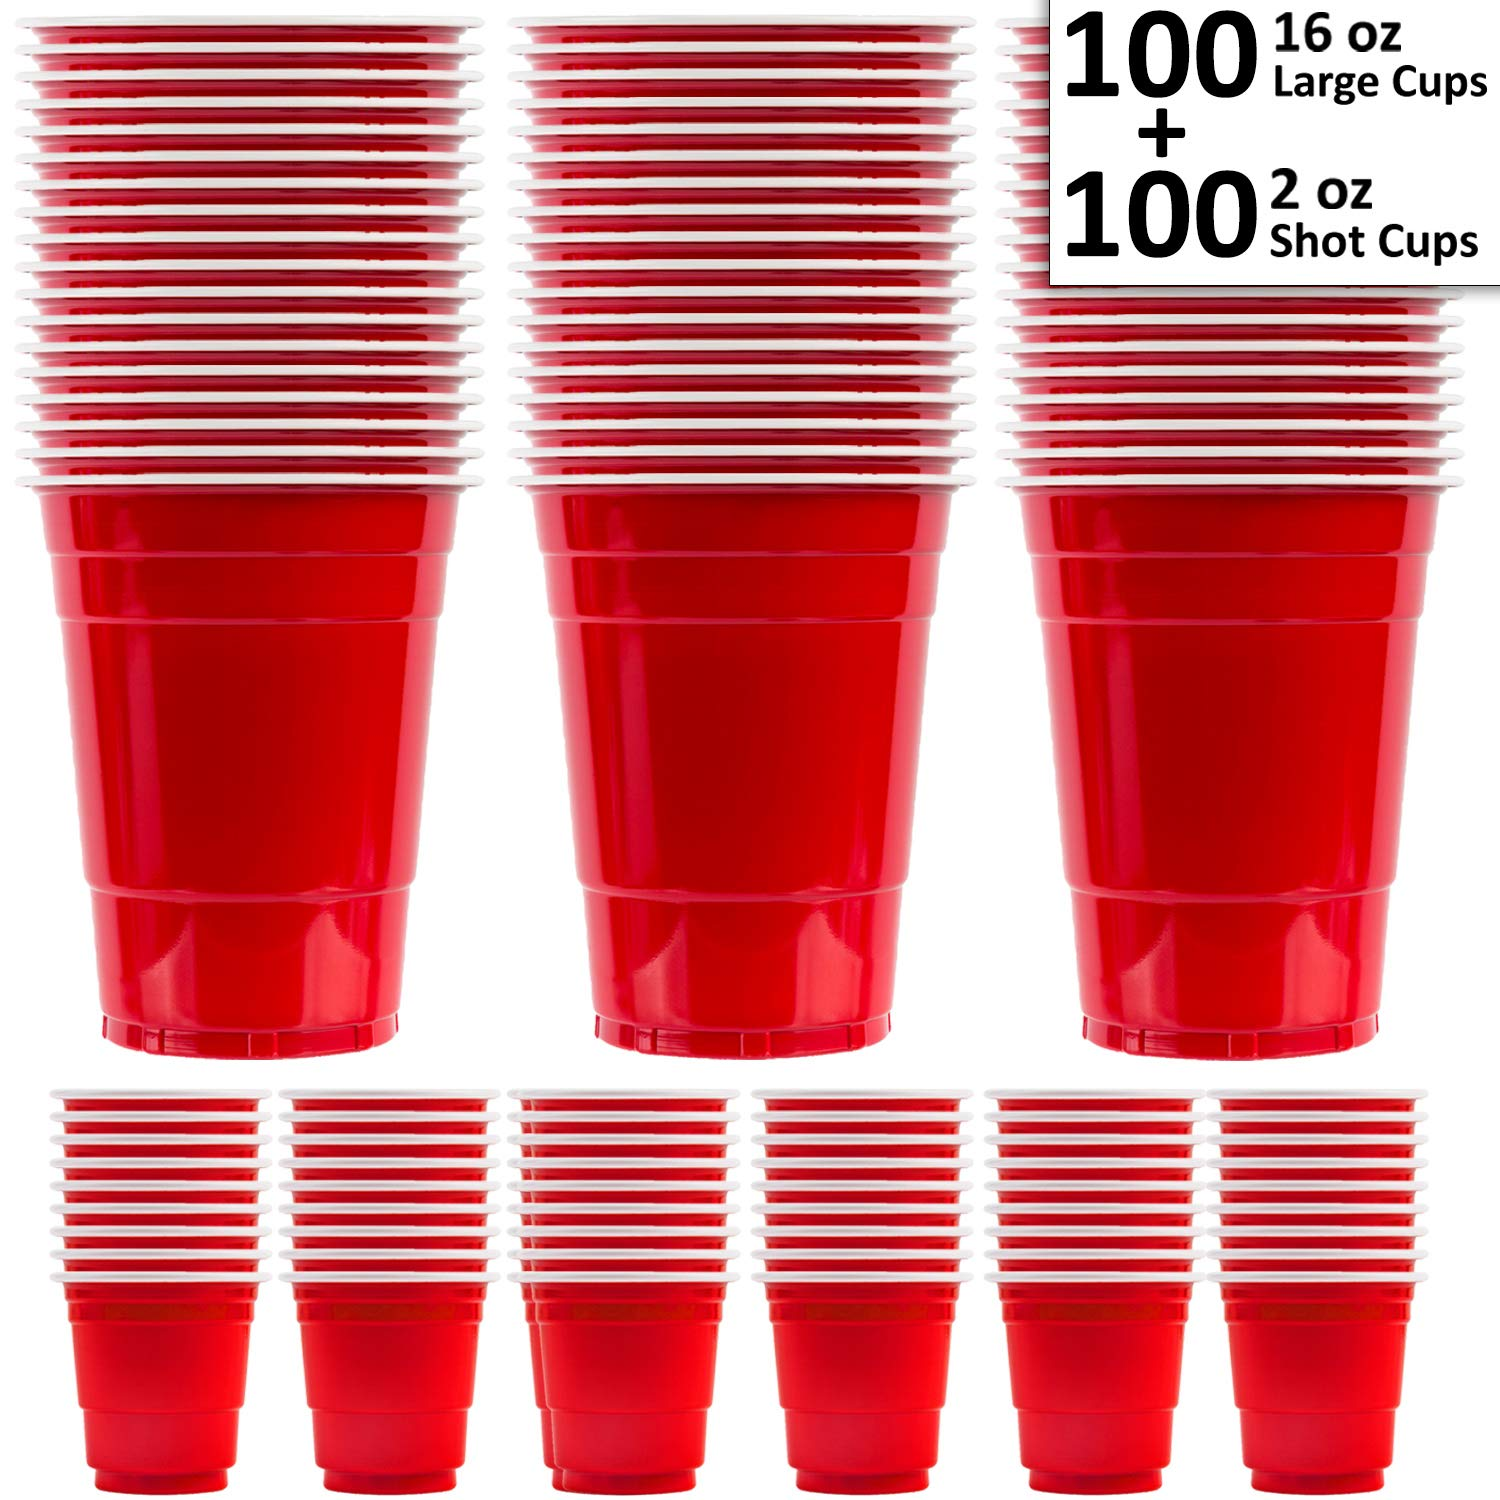 Large Red Cups (16 oz) + Mini Plastic Shot Glasses (2 oz) - 200 total (100 each) - Great for parties, Beer Pong, Jello, Bomb Shots by HeroFiber